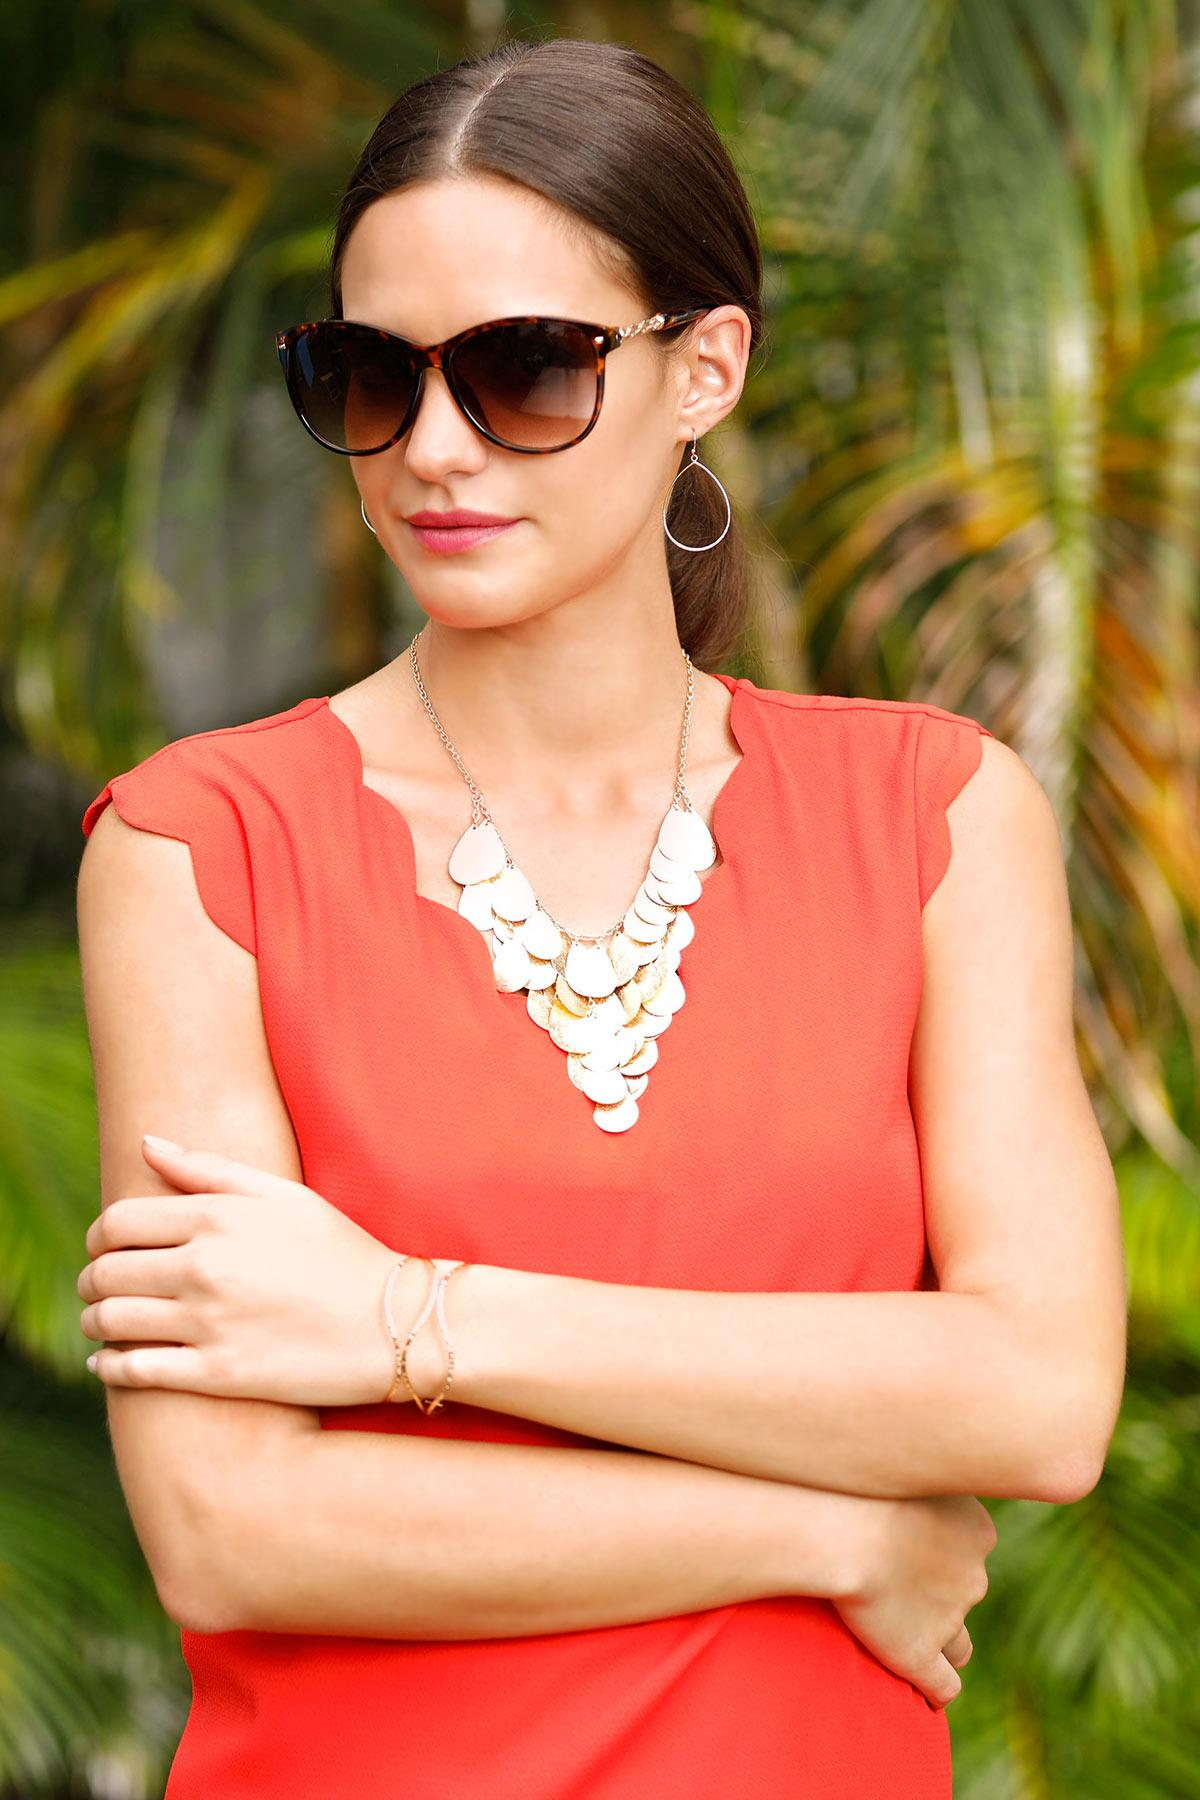 Trellis Arm Sunglasses